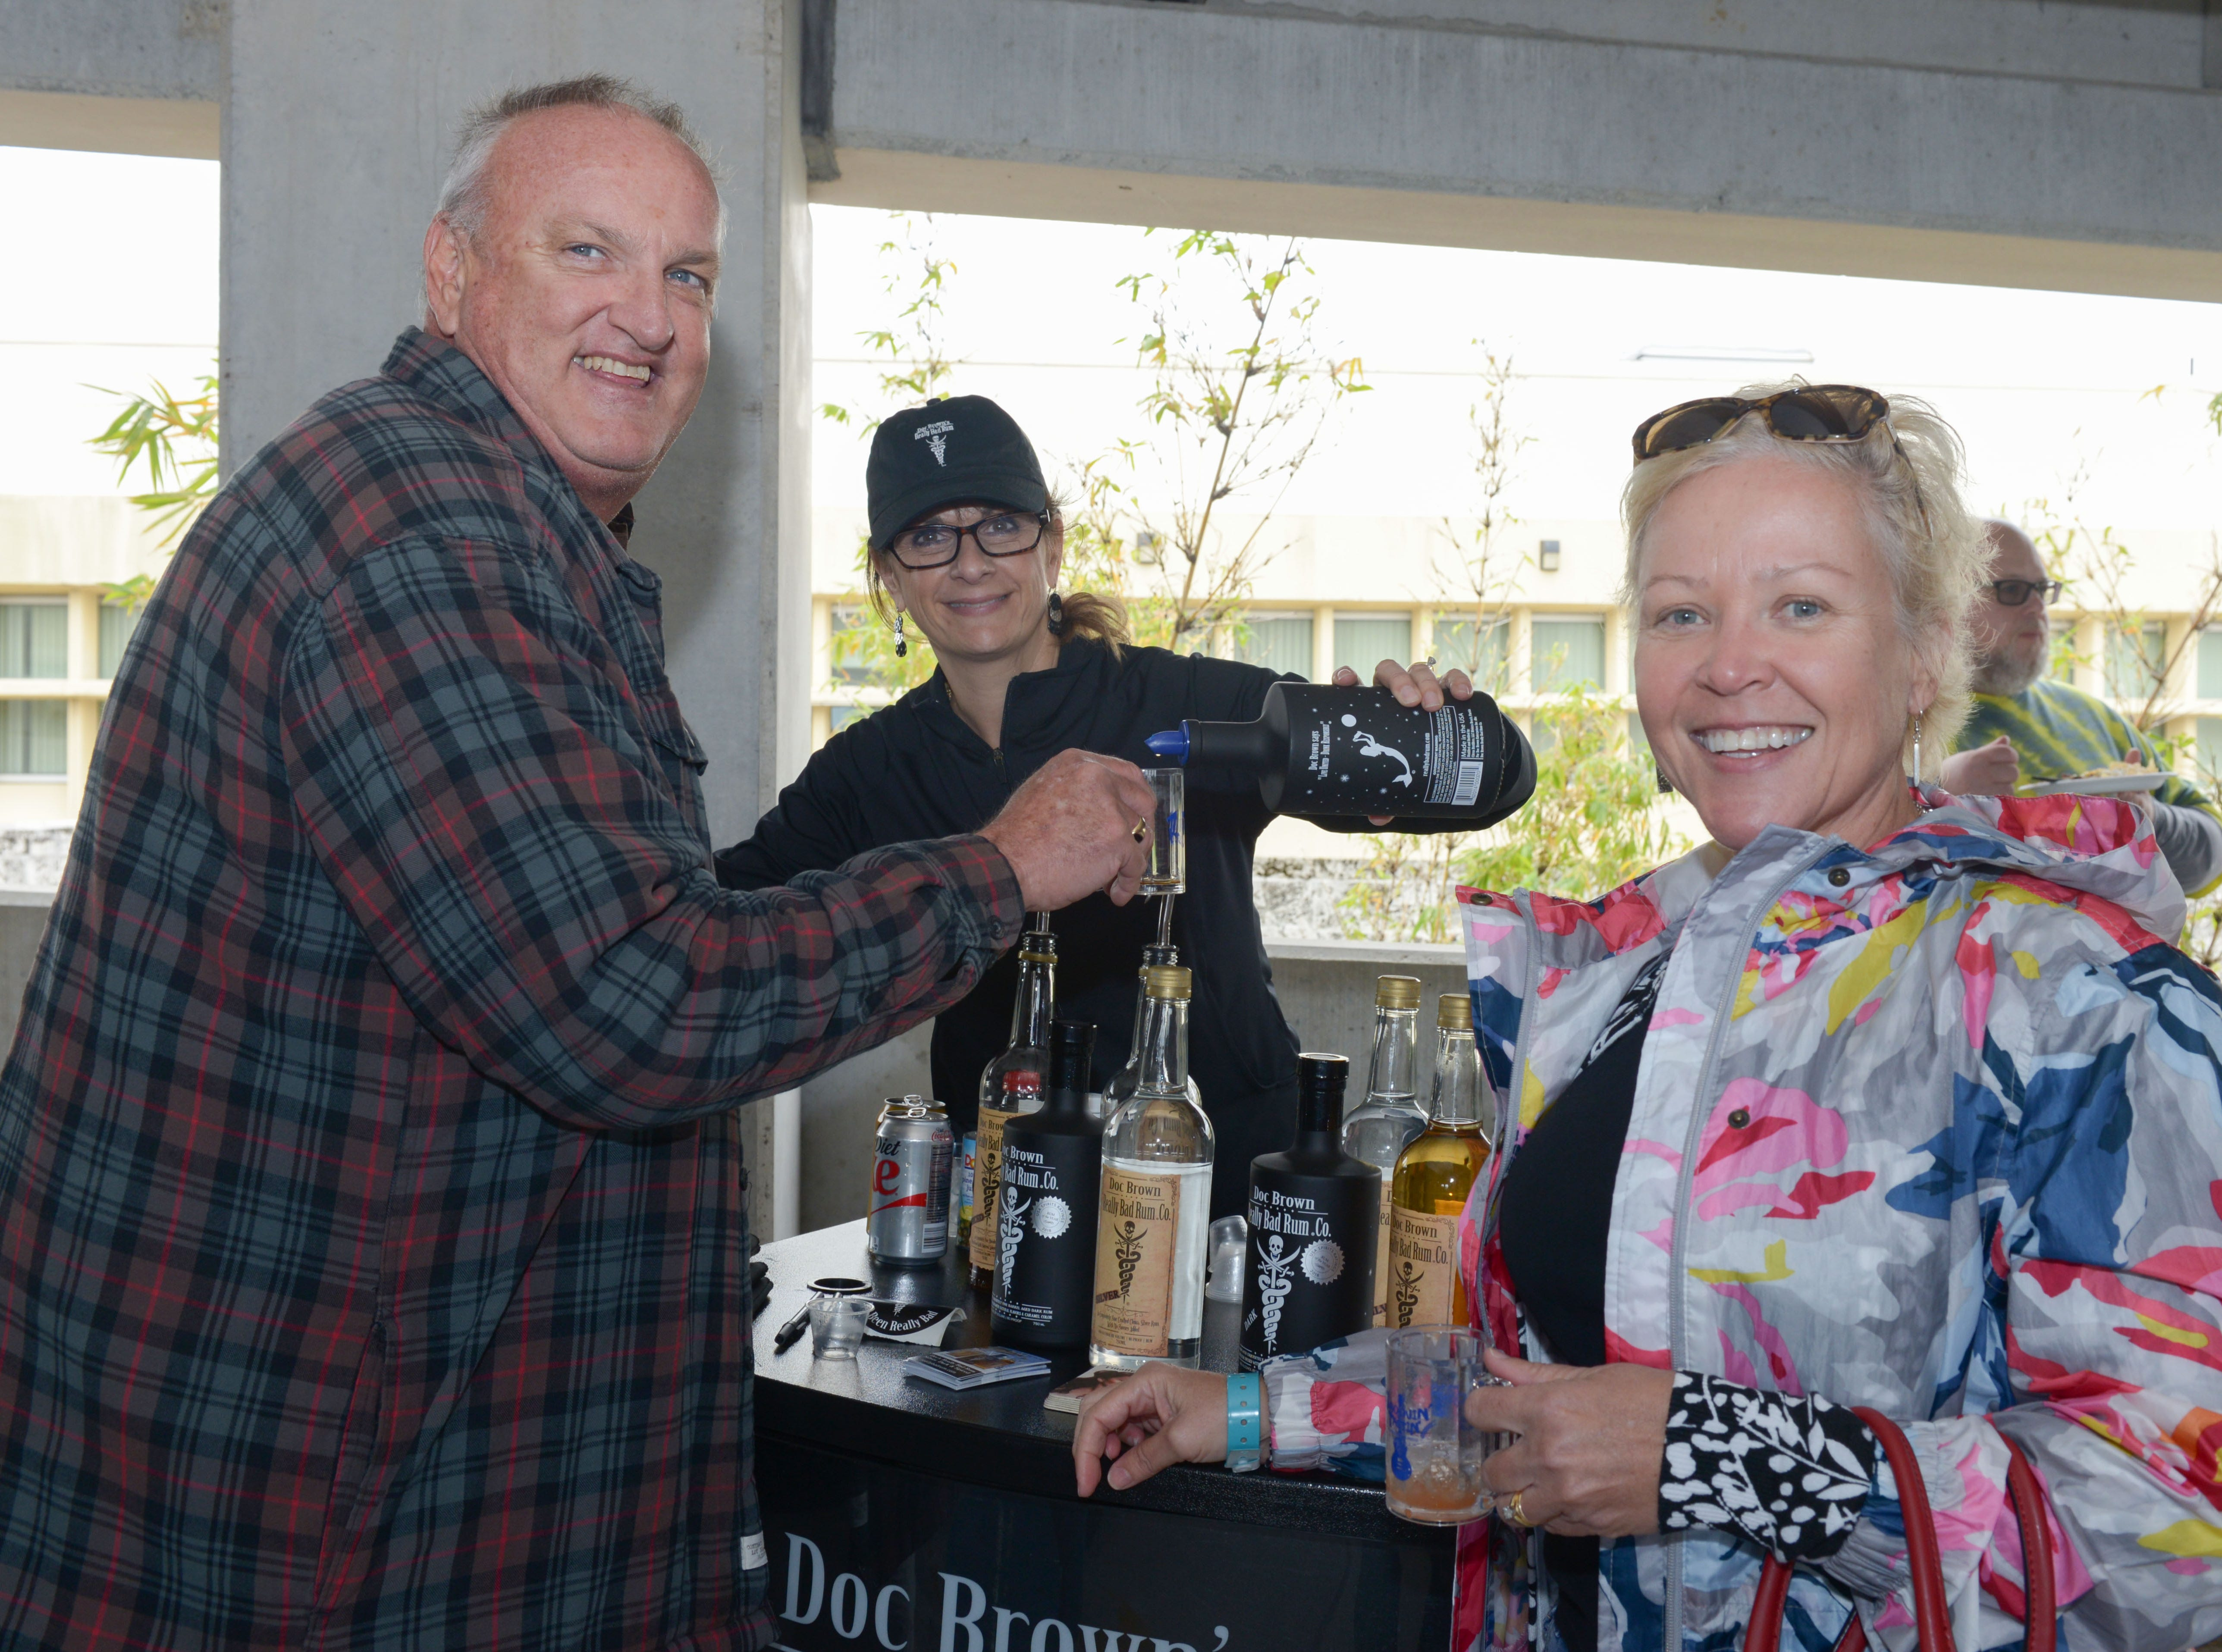 Richard and Gaby Radcliffe with Susan Brown, center, of Doc Brown's Really Bad Rum at Bluebird Educational Foundation's Groovin' & Tastin' Sunrise City Wine & Spirits Fest.